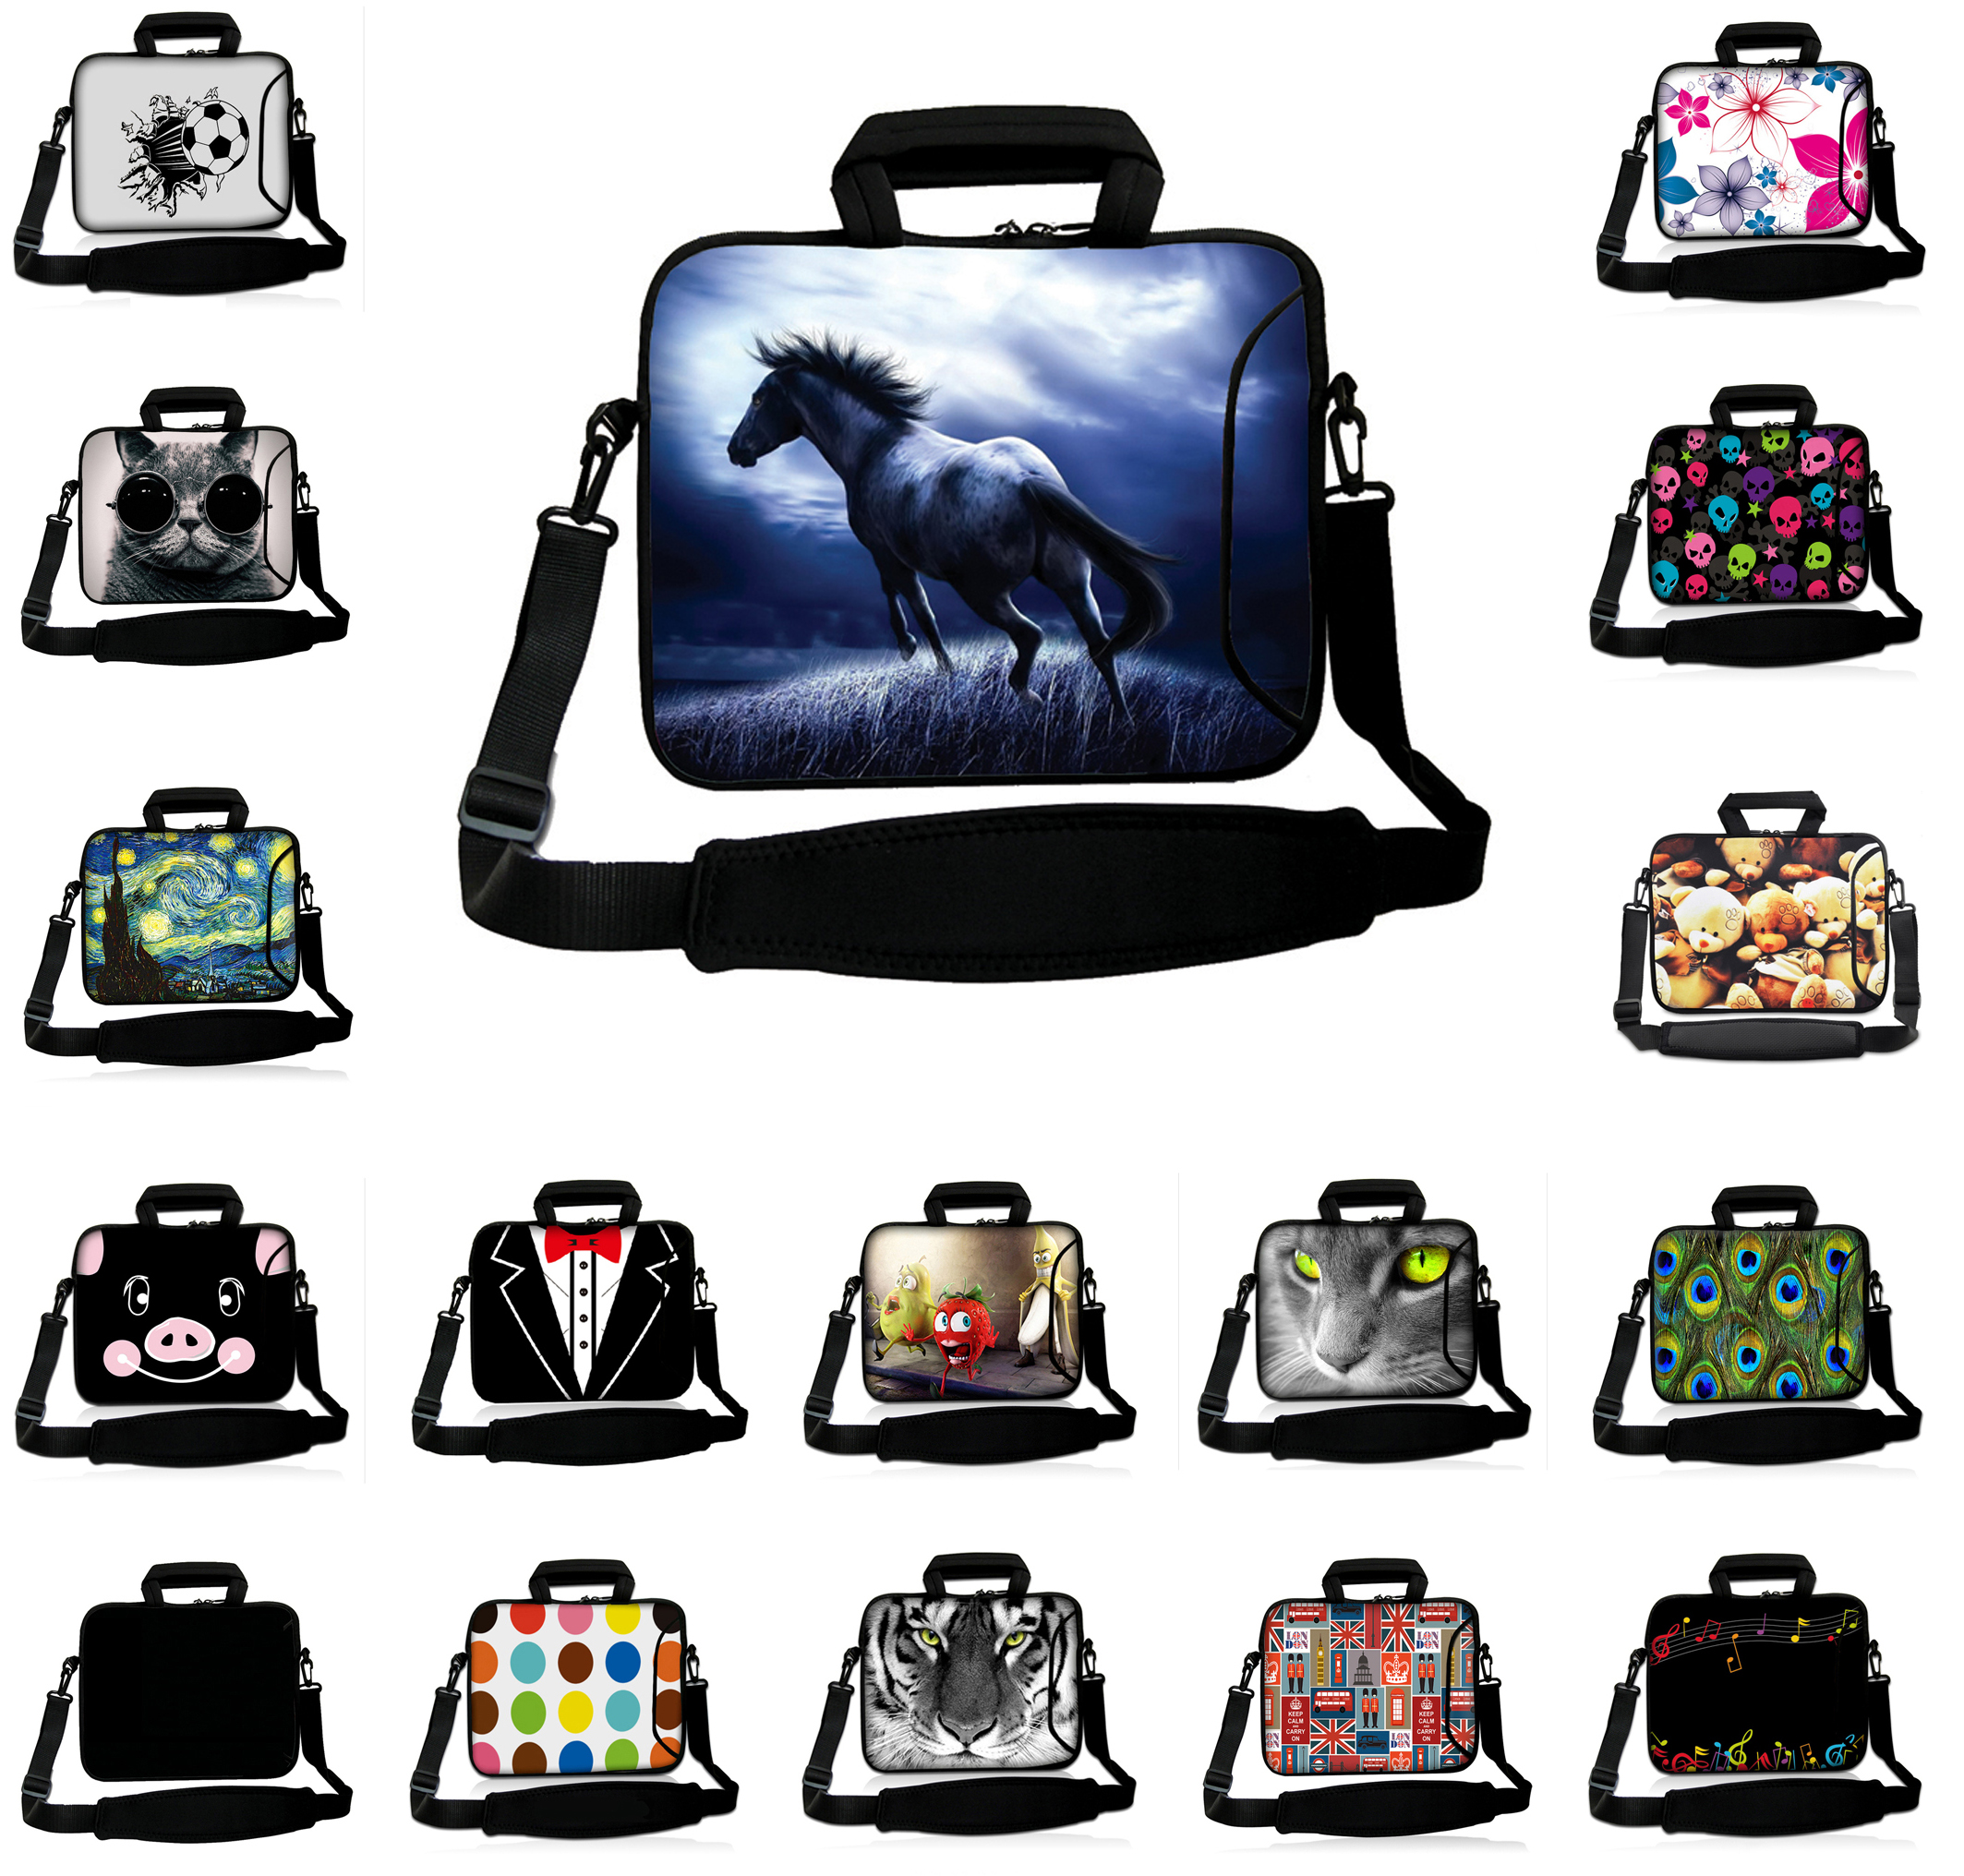 Run Horse 15.6 15 inch Mesns Laptop Messenger Bags 15.3 15.4 inch Shoulder Strap Tablet Notebook Pouch Cove Cases For Asus Dell<br><br>Aliexpress